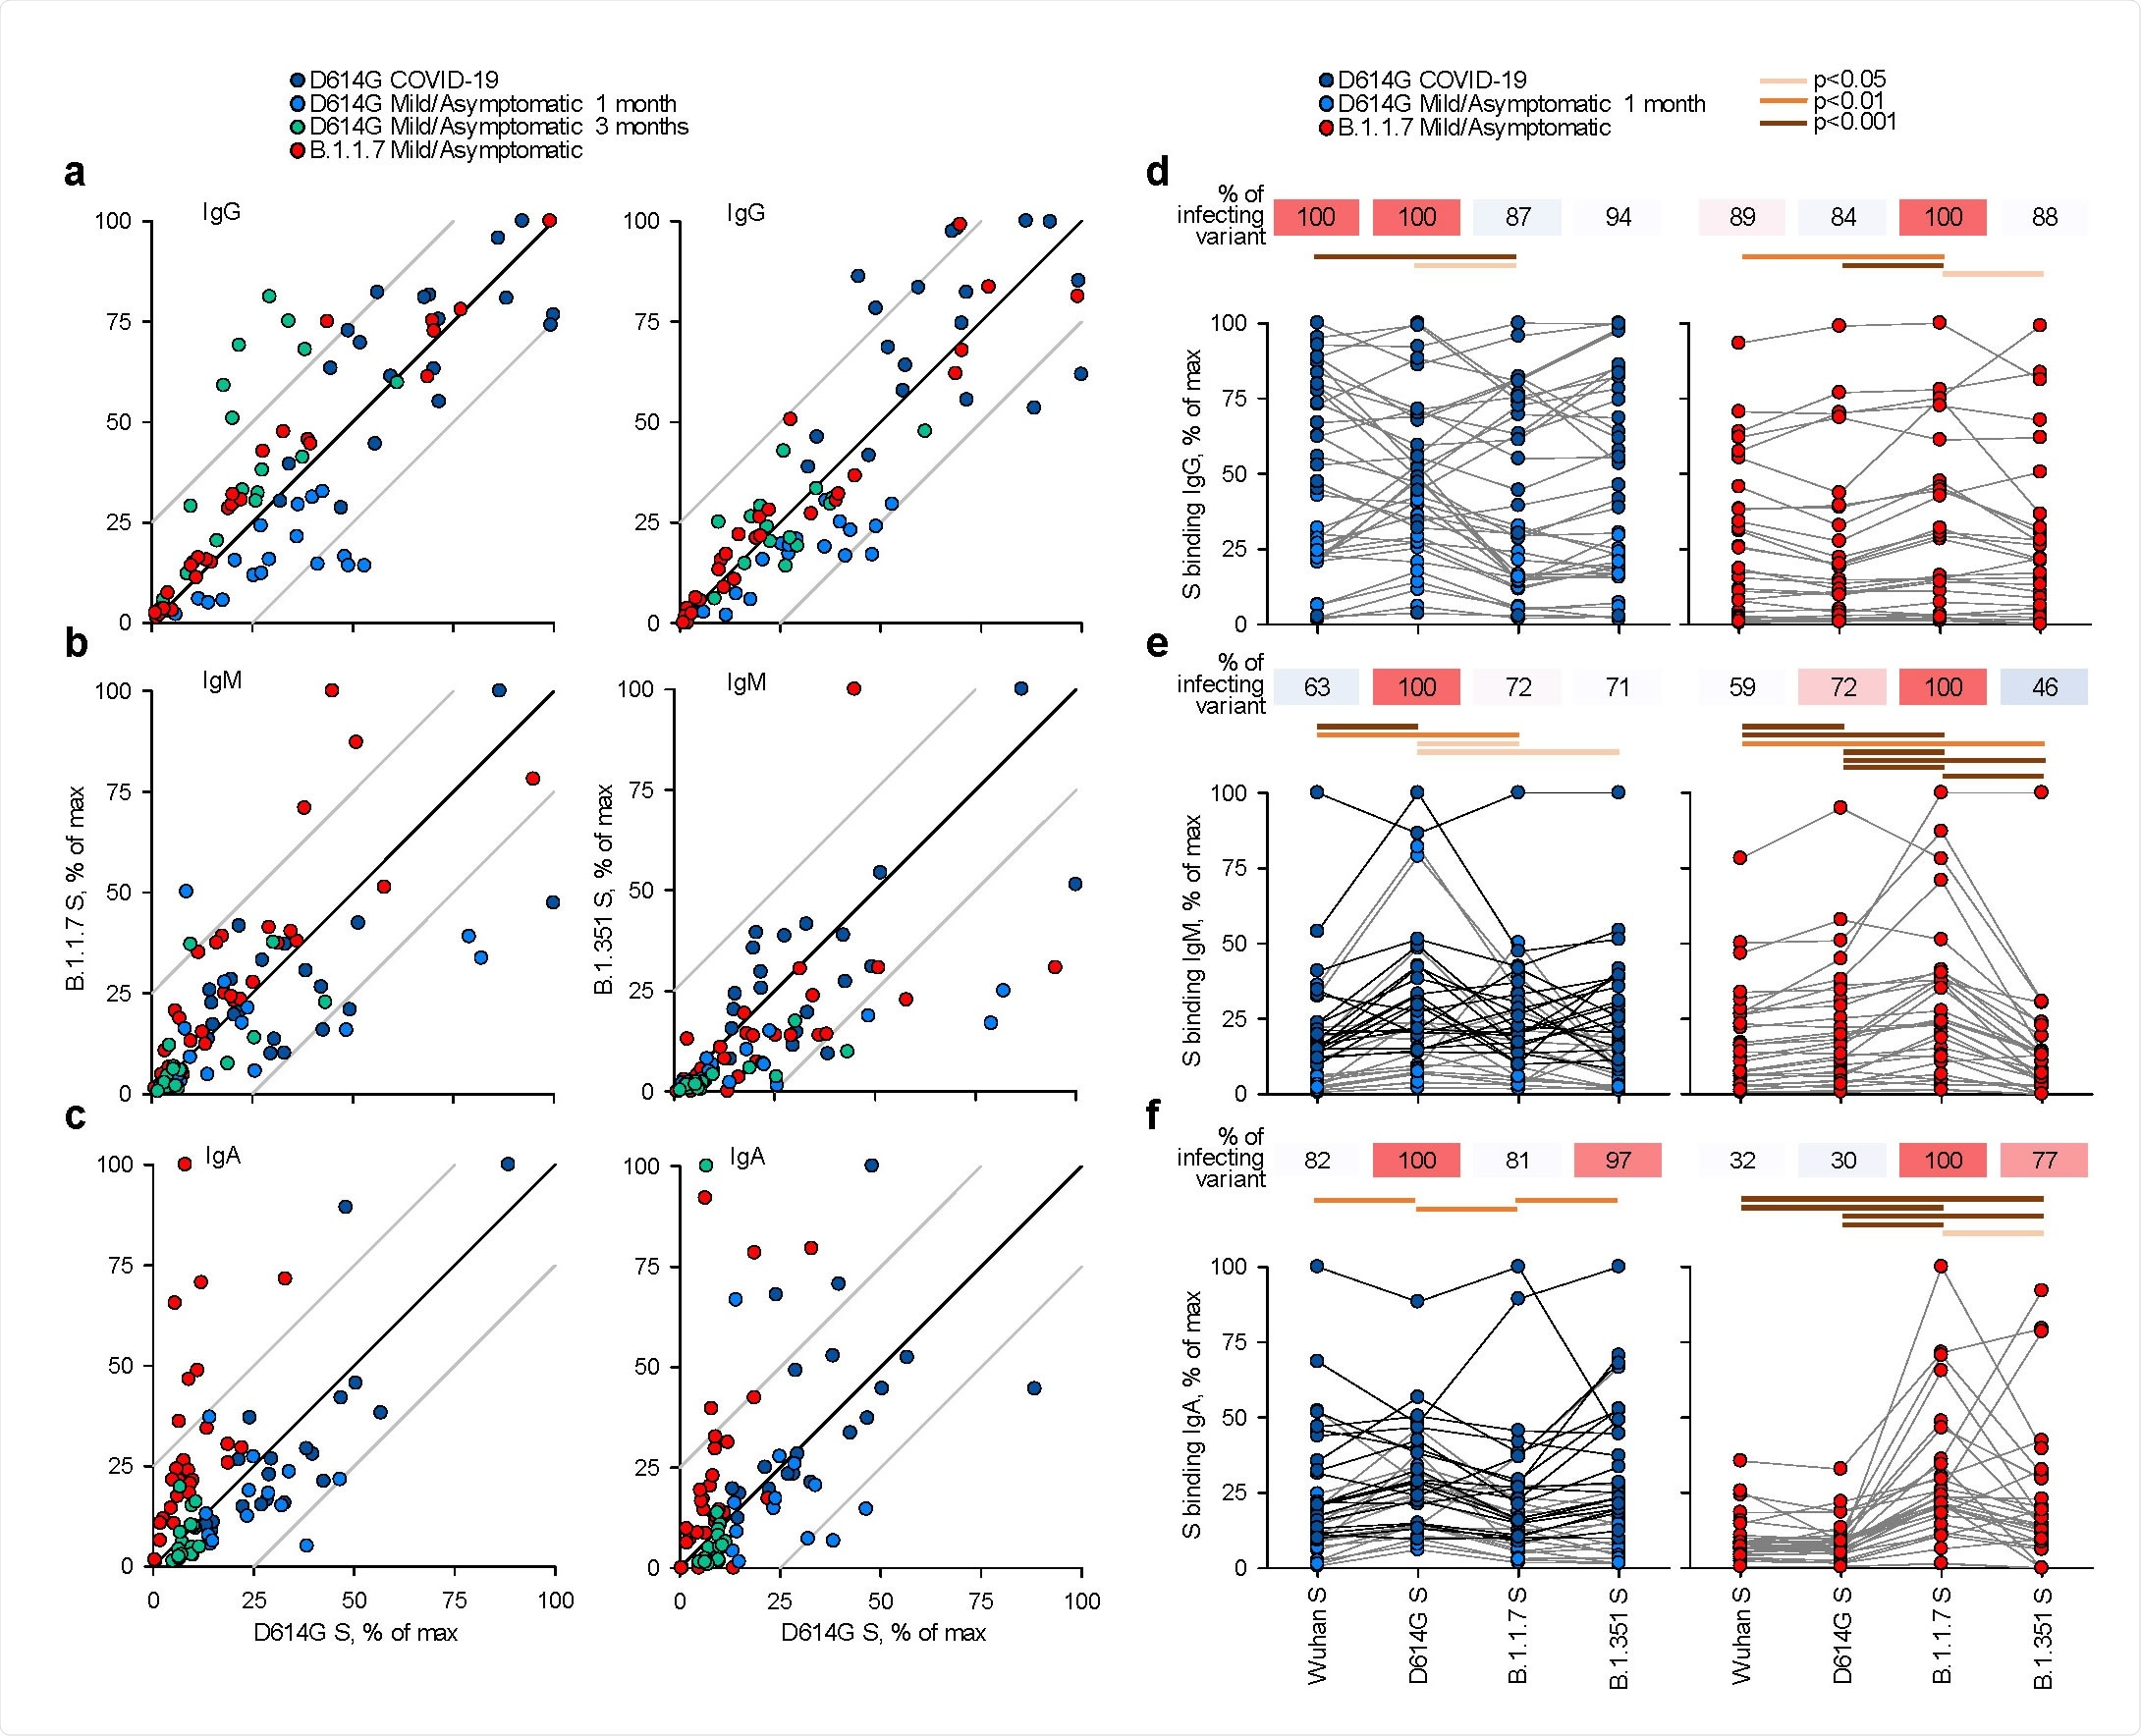 Recognition of distinct SARS‐CoV‐2 spike glycoproteins by antibodies in D614G and B.1.1.7  sera. a‐c, Correlation of IgG (a), IgM (b) and IgA (c) antibody levels to D614G and B.1.1.7 or B.1.351  spikes in the indicated groups of donors infected either with the D614G or B.1.1.7 strains. Each symbol  represents an individual sample and levels are expressed as a percentage of the positive control. Black  lines denote complete correlation and grey lines a 25% change in either direction. d‐f, Comparison of  IgG (d), IgM (e) and IgA (f) antibody levels to the indicated spikes in groups of donors acutely infected  either with the D614G or B.1.1.7 strains. Connected symbols represents individual donors. Numbers  above the plots denote the average binding to each spike, expressed as a percentage of binding to the  infecting spike.